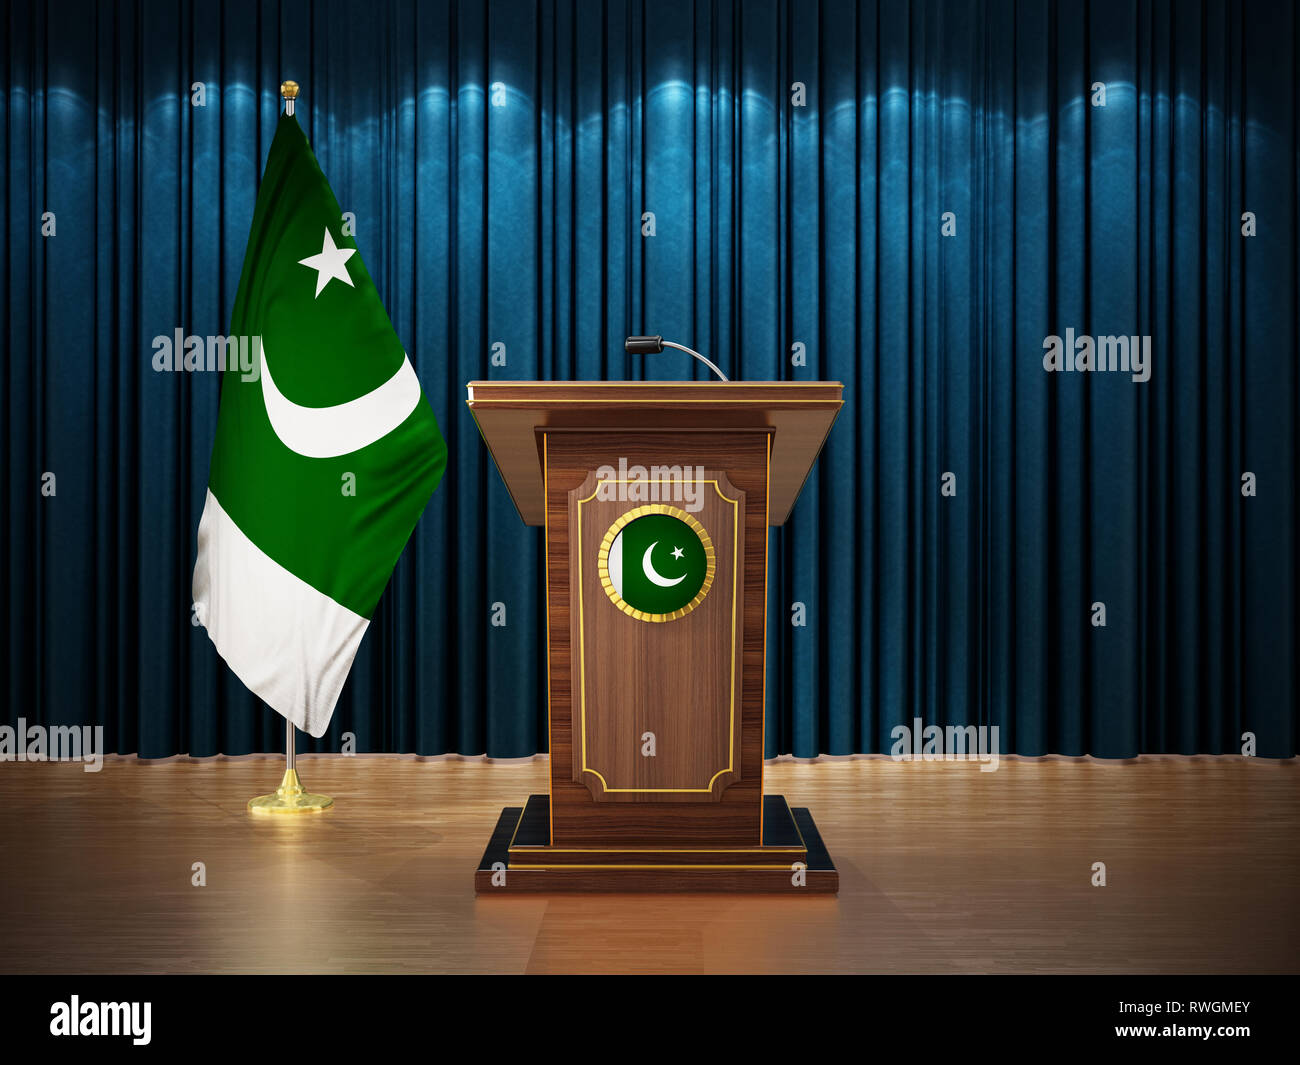 Press conference with flags of Pakistan and lectern against the blue curtain. 3D illustration. - Stock Image